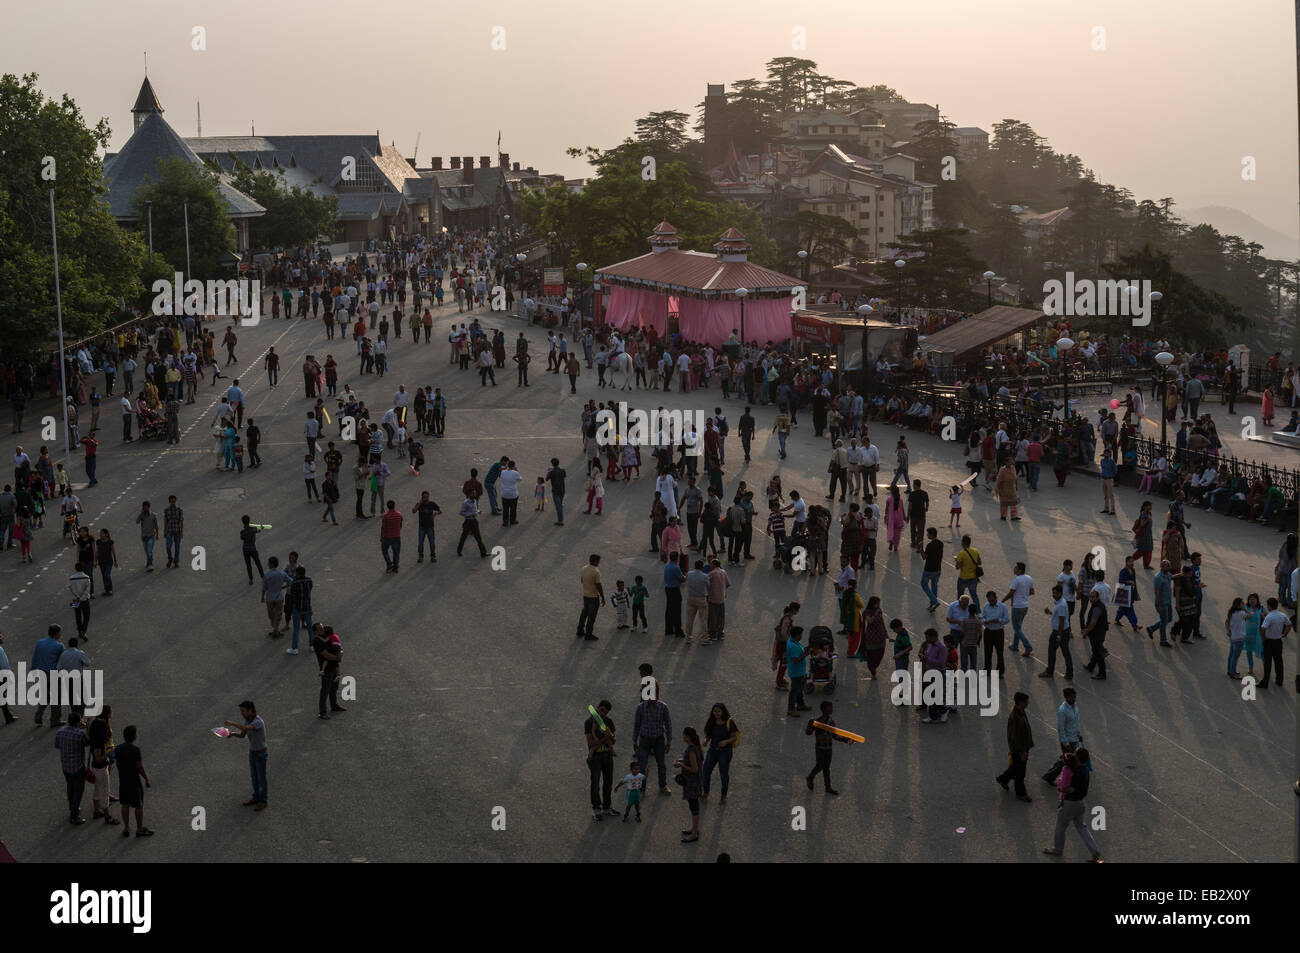 Pedestrians on Mall Road, Shimla, Himachal Pradesh, India - Stock Image